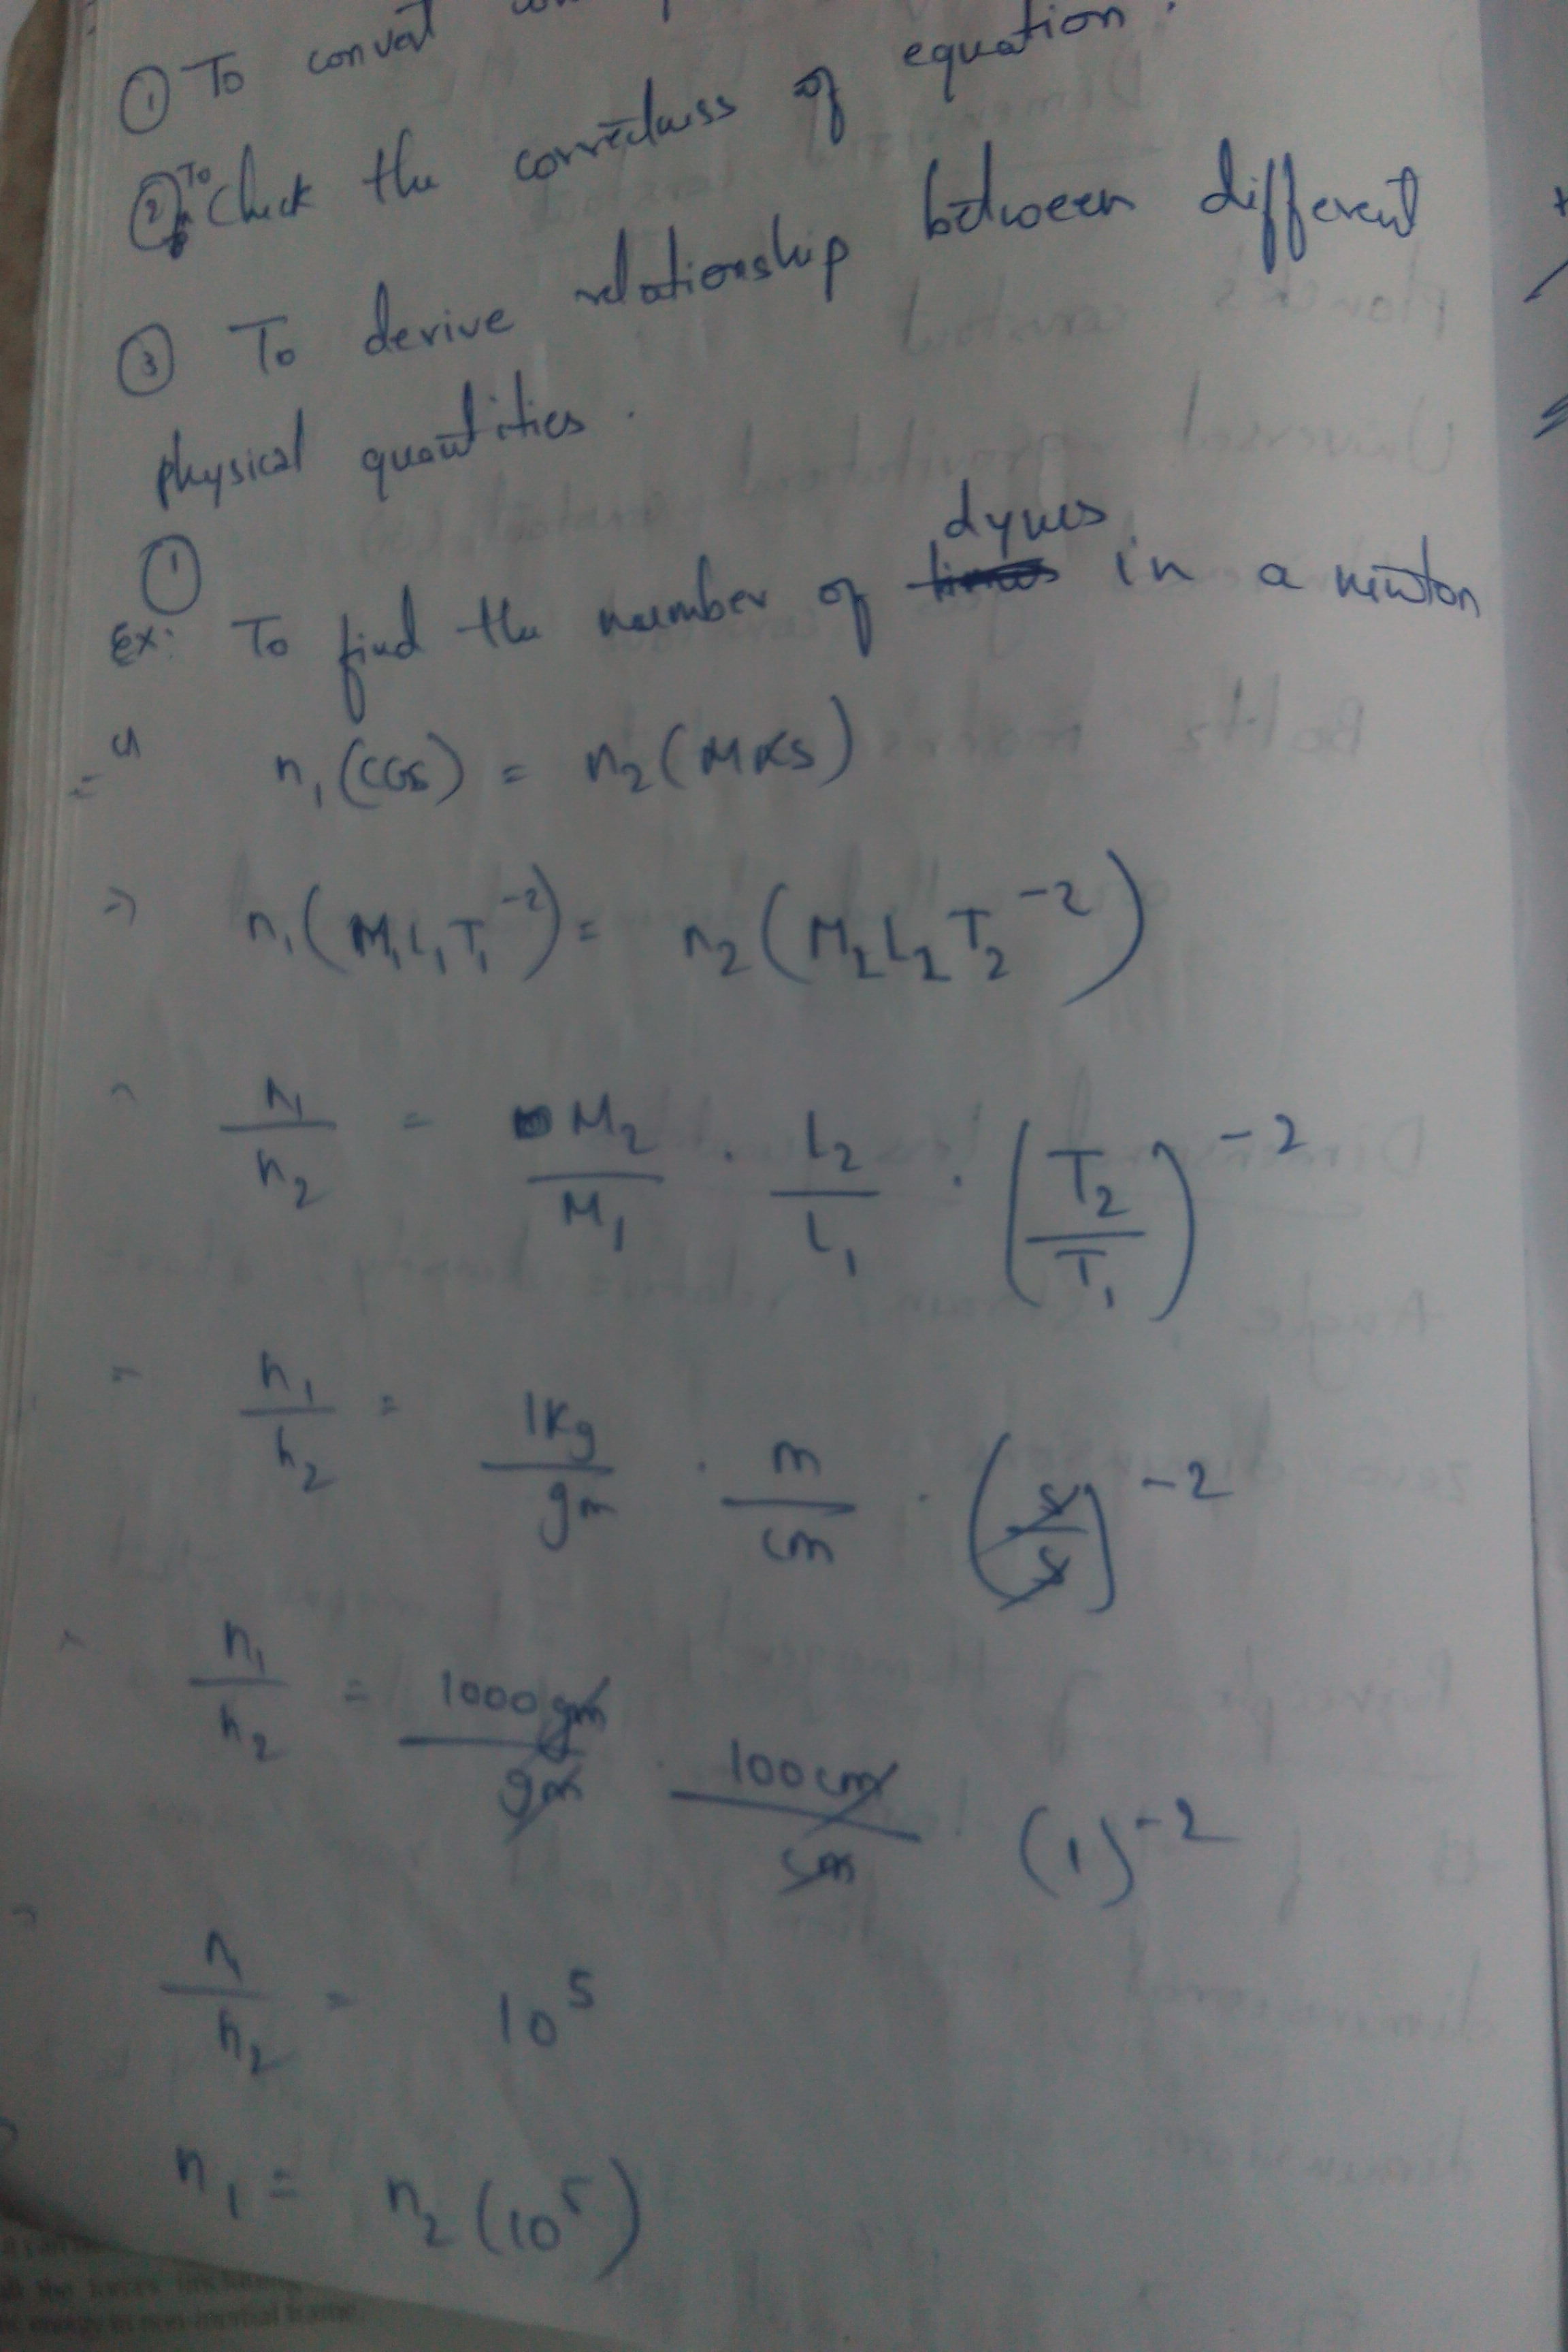 Convert 1 dyne into newton using dimensional analysis